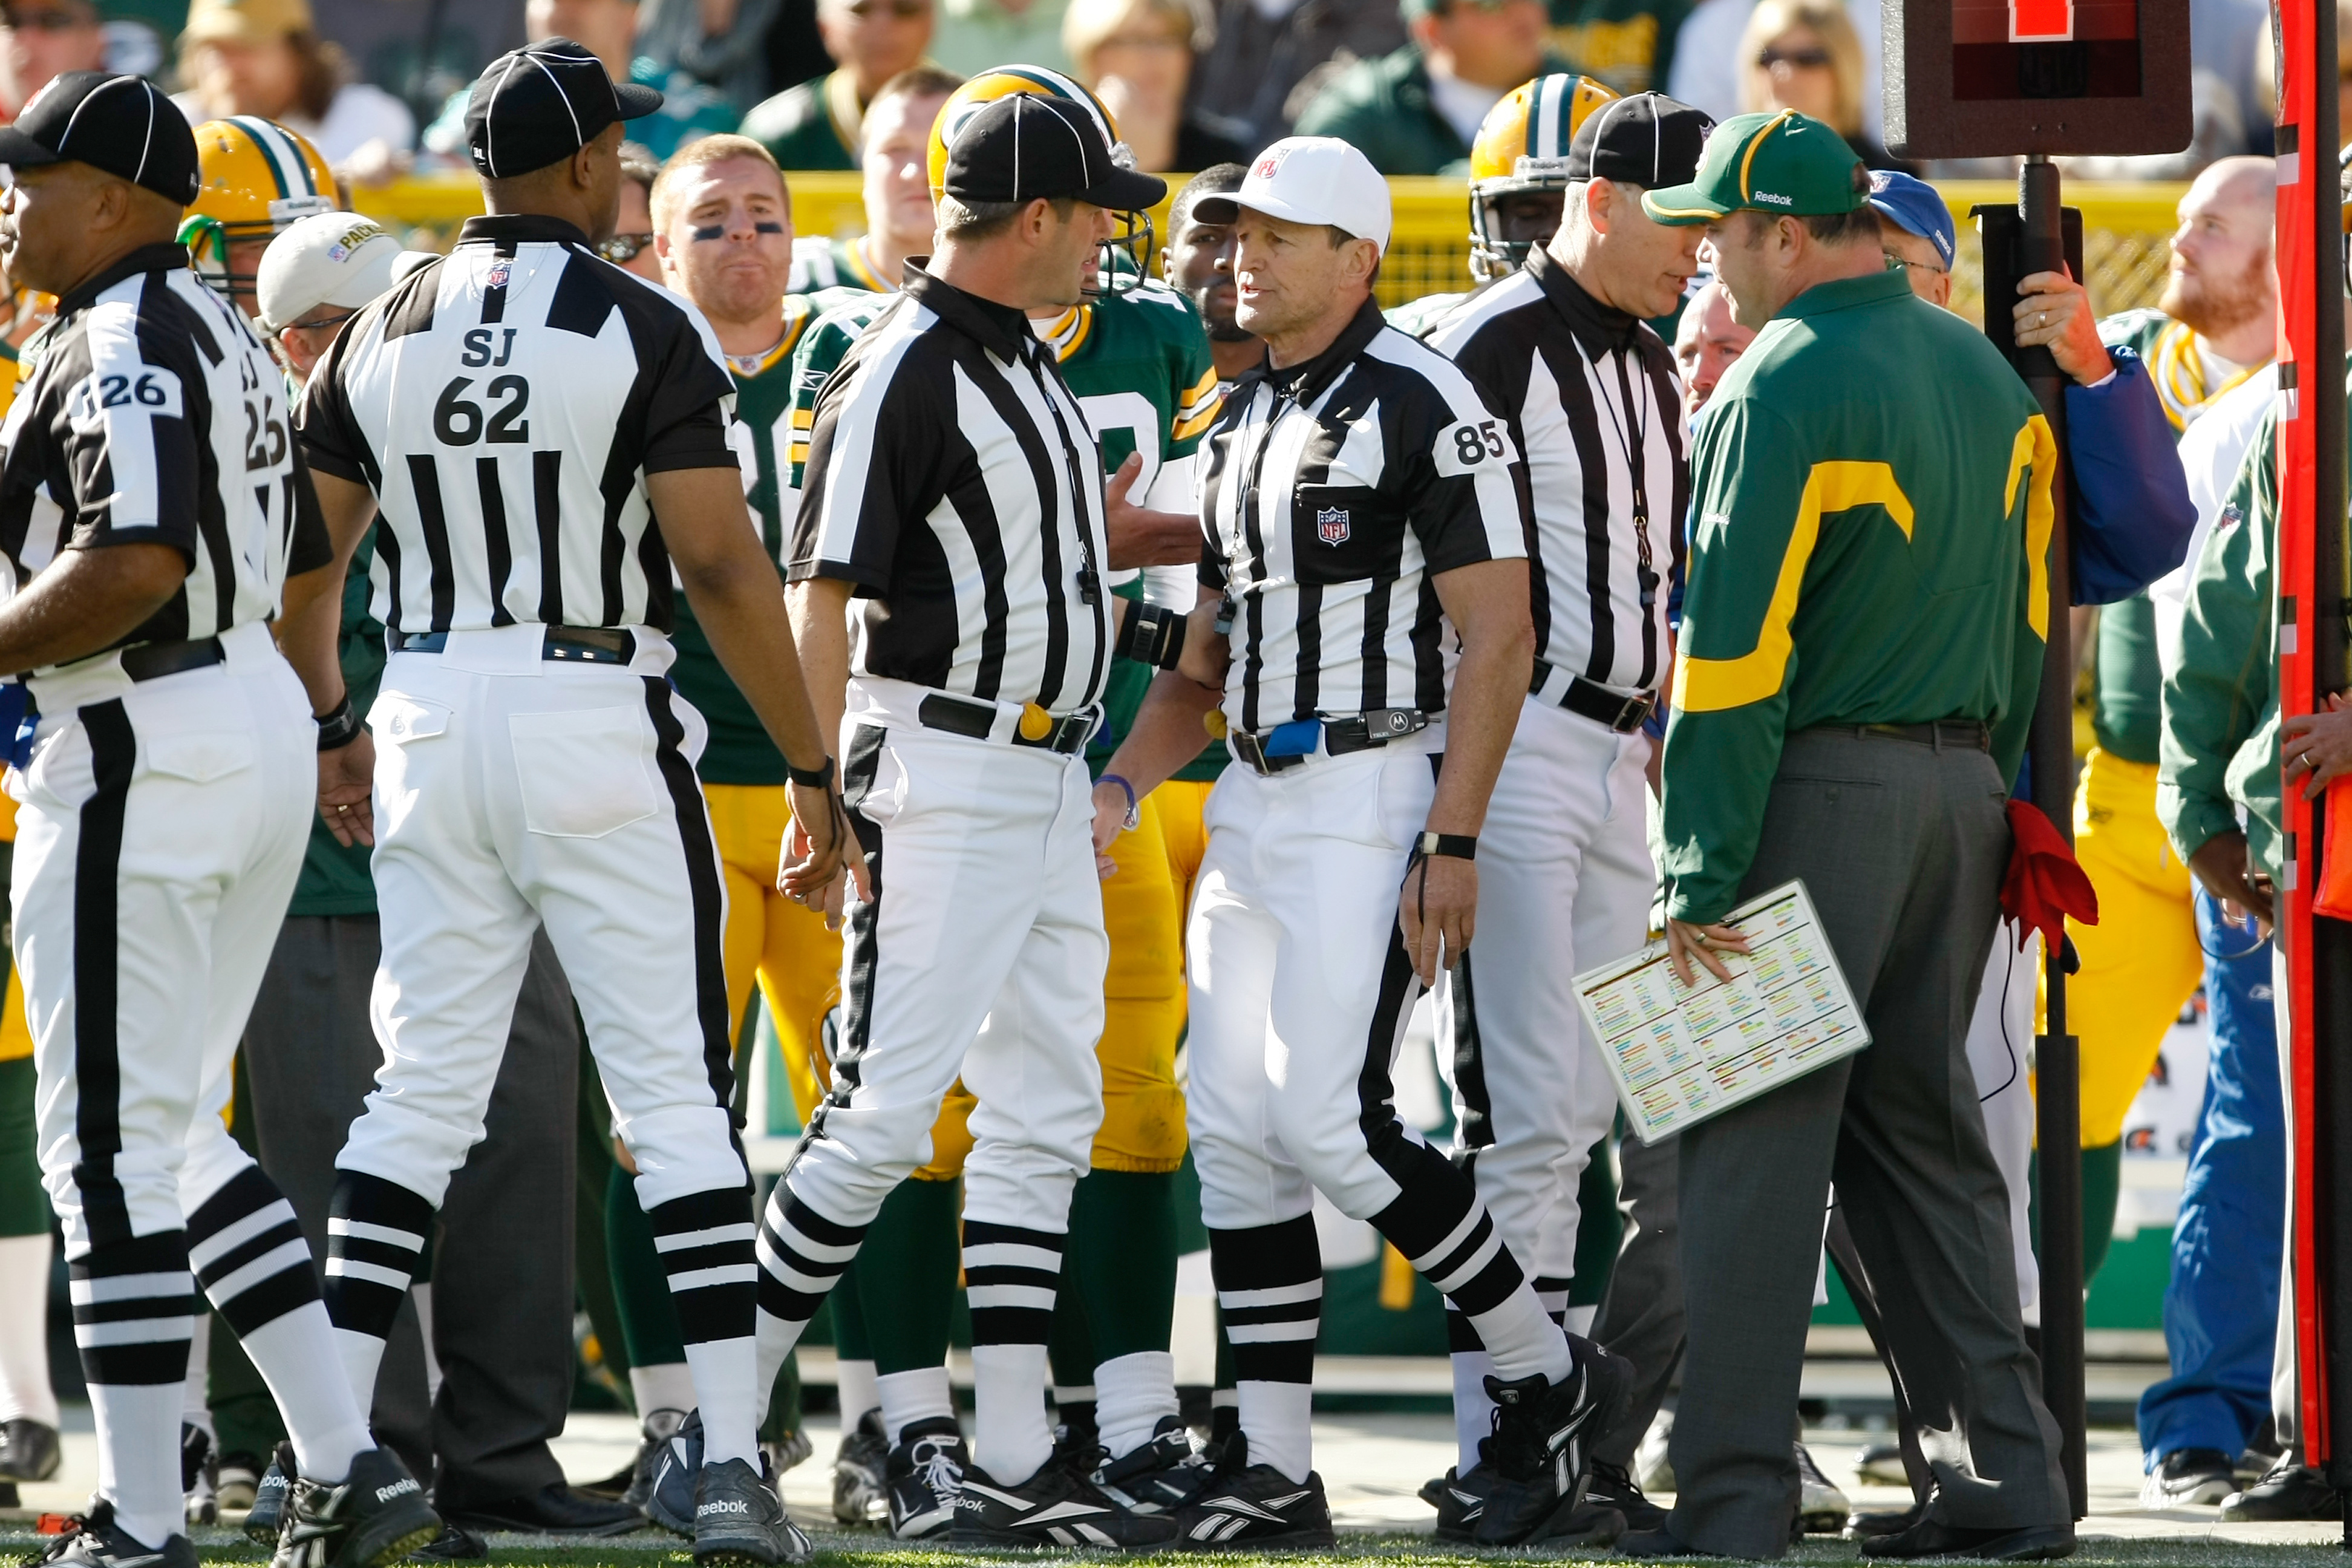 GREEN BAY, WI - OCTOBER 17: Mike McCarthy of the Green Bay Packers argues with Ed Hochuli #85 as he follows him and other officials on the field after a controversial call in the 4th quarter against the Miami Dolphins at Lambeau Field on October 17, 2010